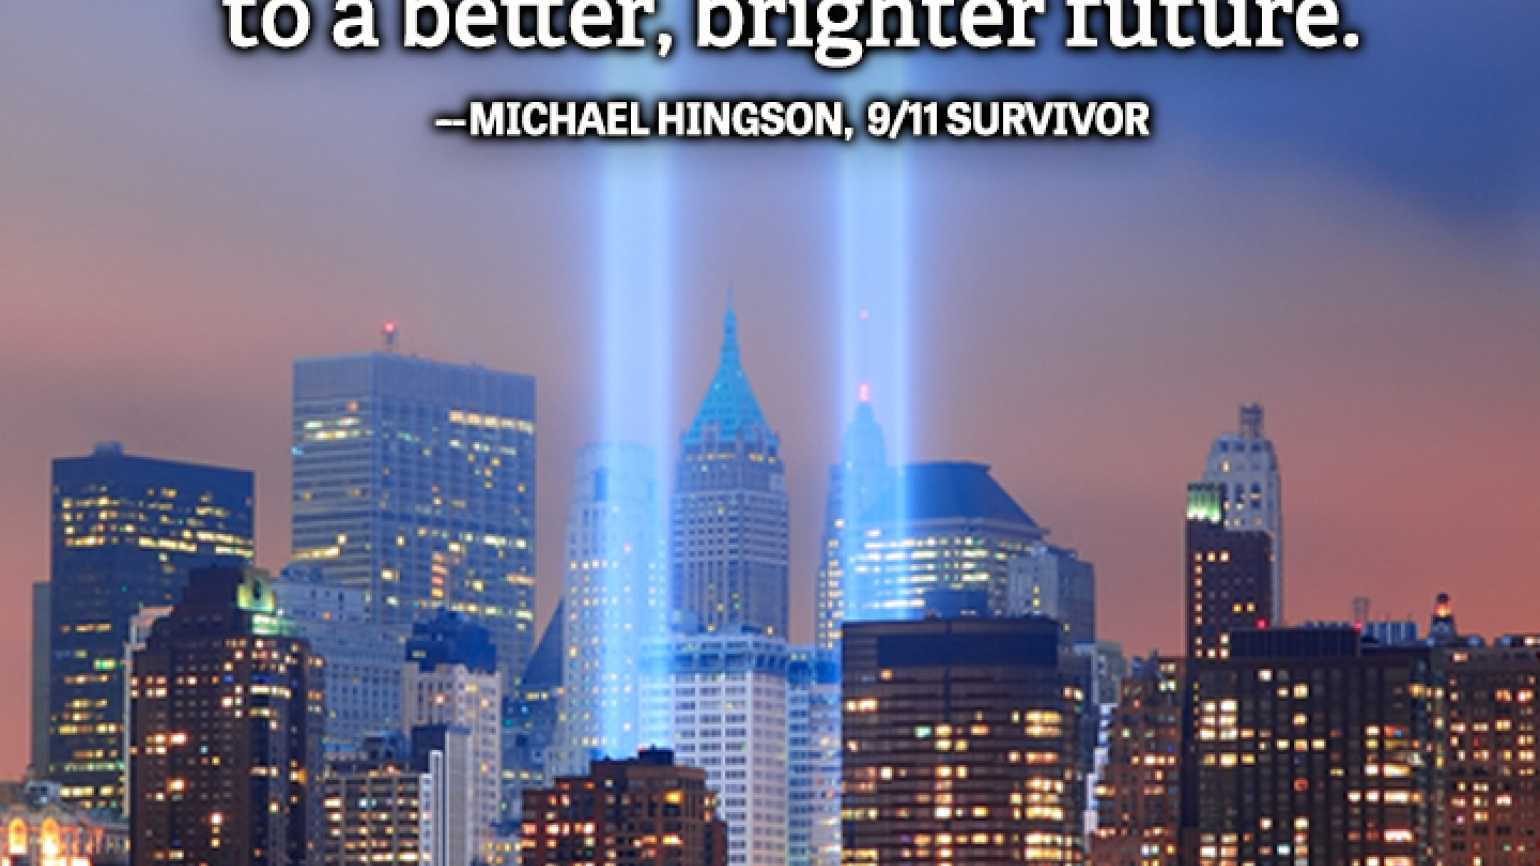 Michael Hingson quote God 9/11 better brighter future